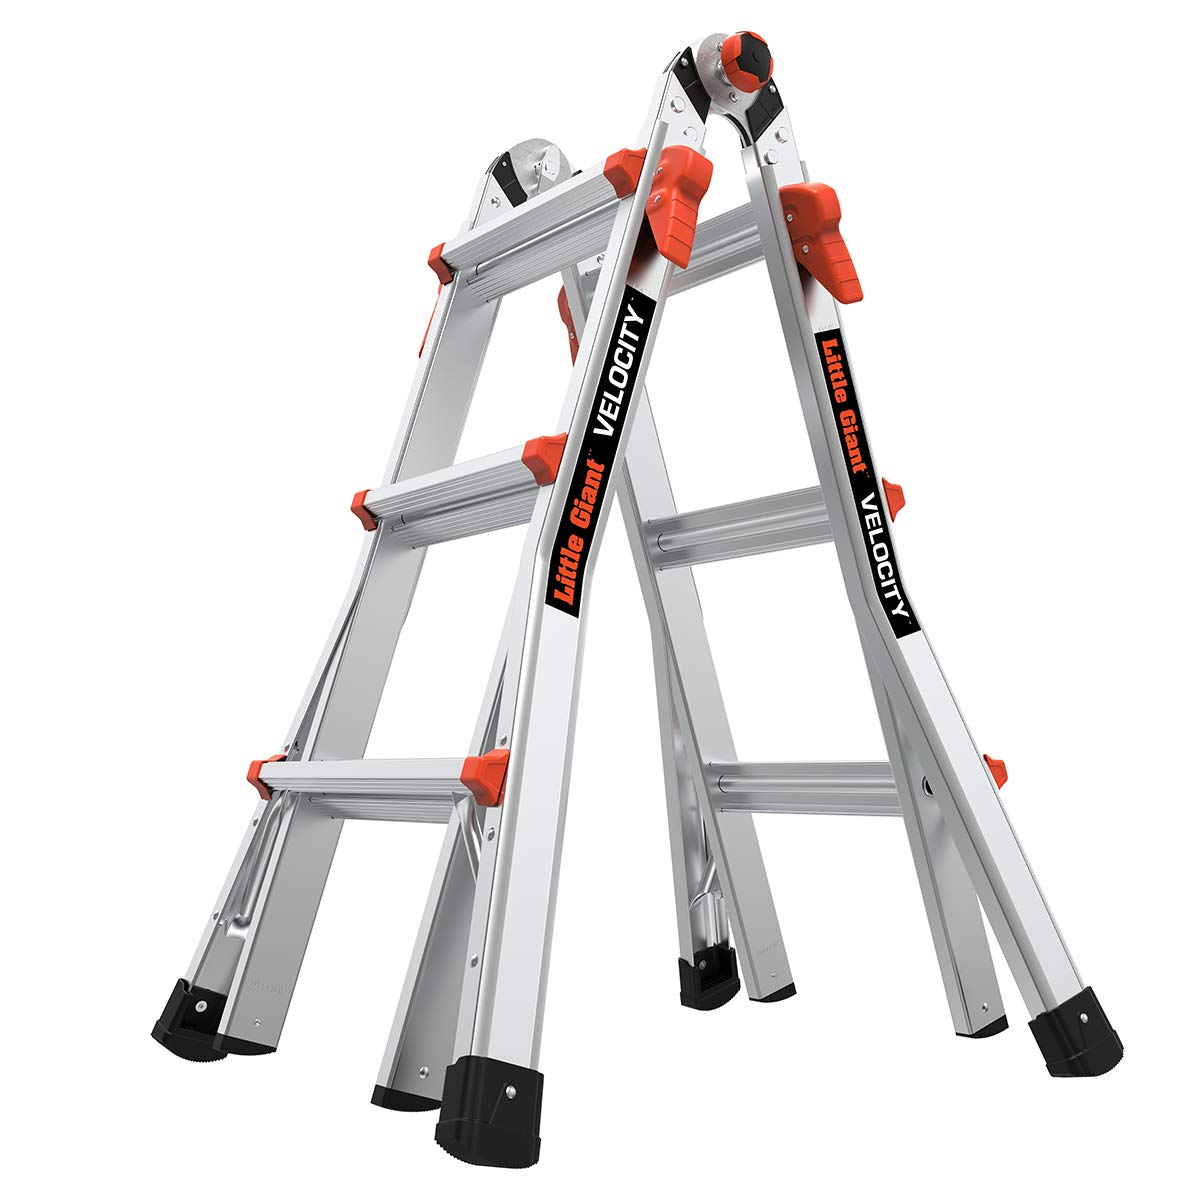 Little Giant Ladders, Velocity, M13, 13 Ft, Multi-Position Ladder, Aluminum, Type 1A, 300 lbs Weight Rating, (15413-001)